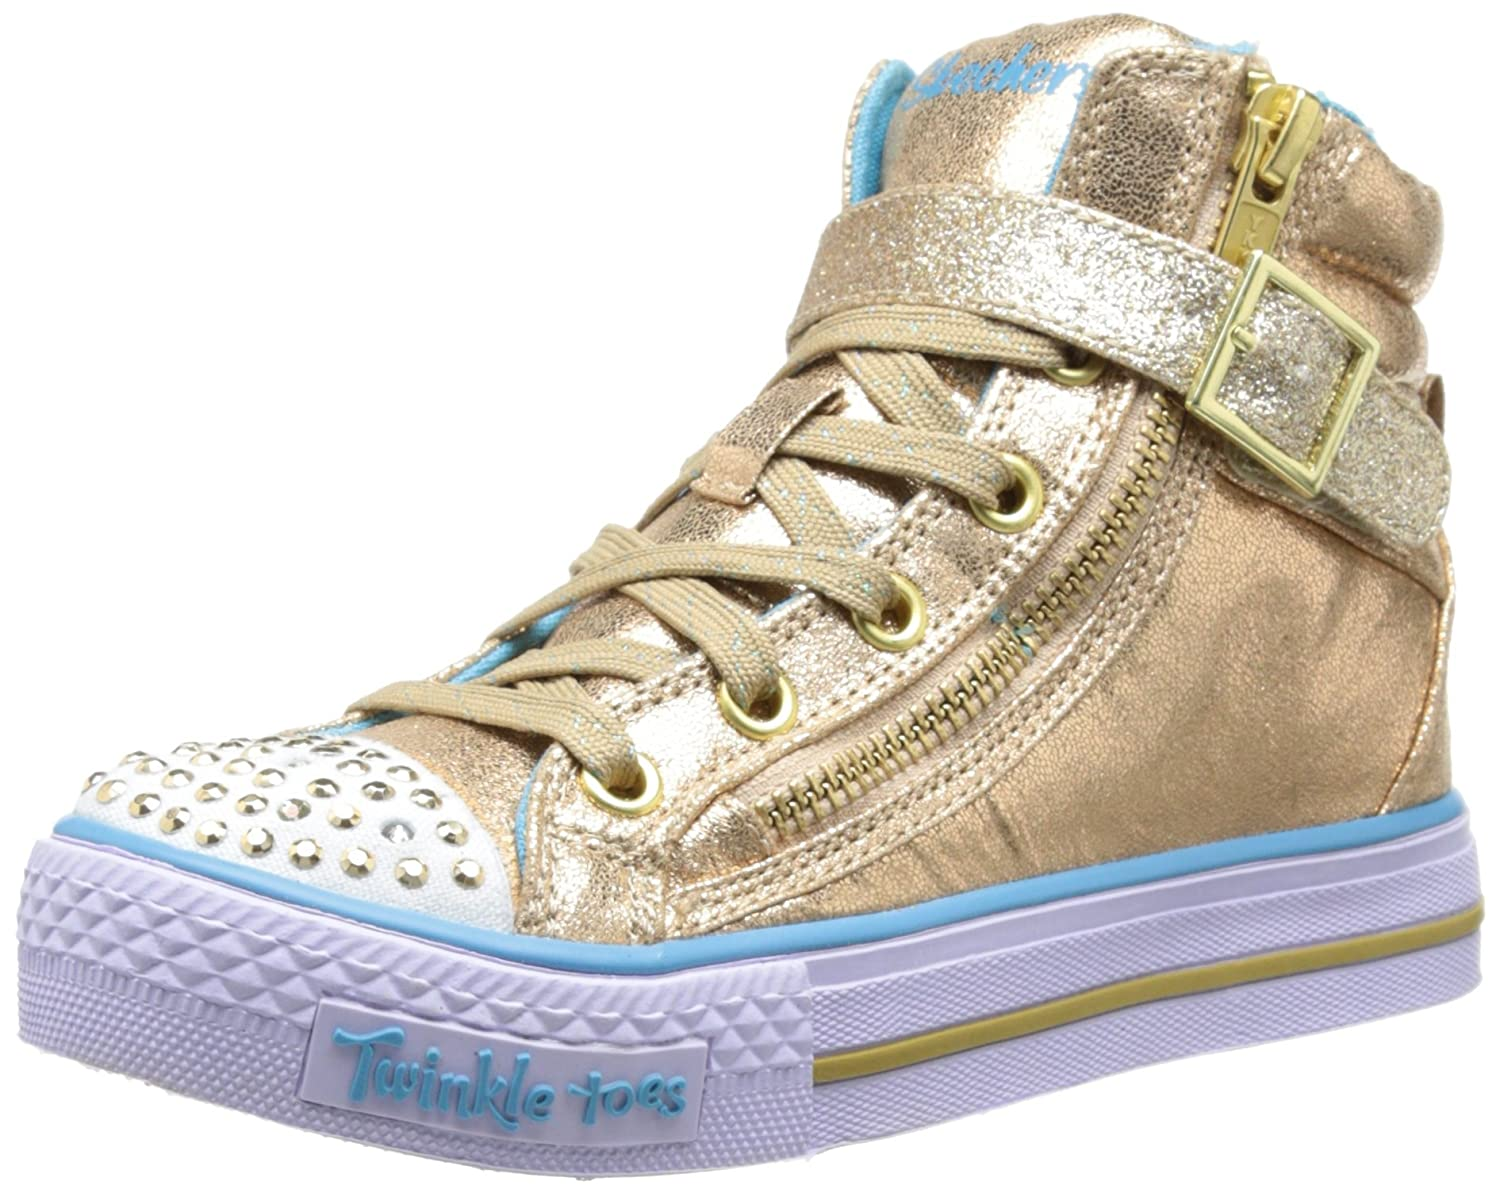 Skechers Kids Heart & Sole Light-Up Sneaker